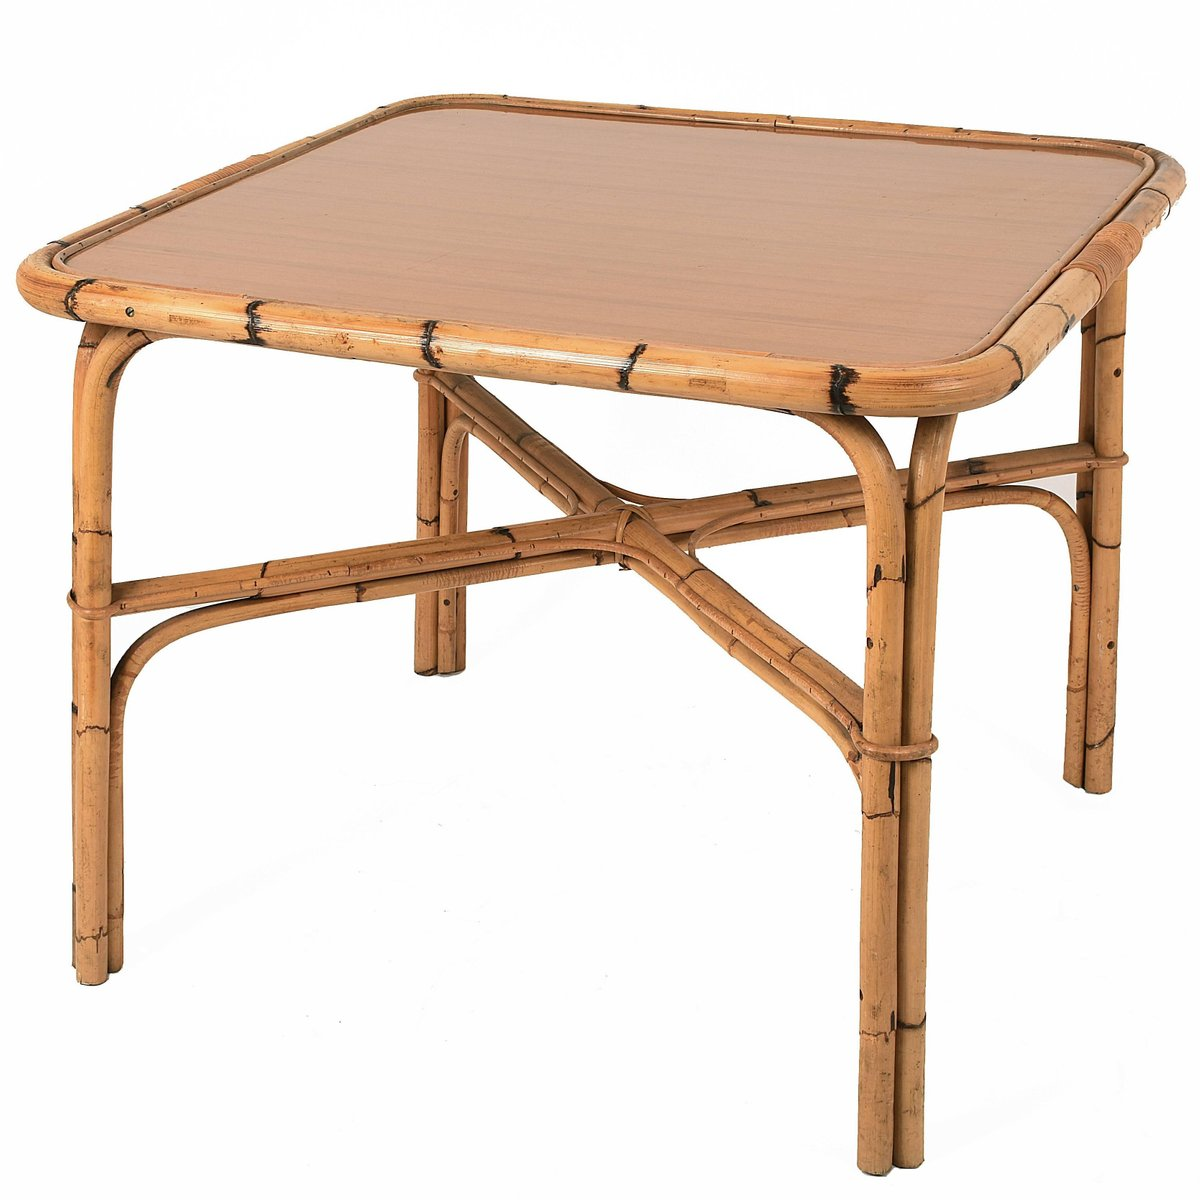 Bamboo Square Table: Italian Square Bamboo Table With Laminate Top, 1960s For